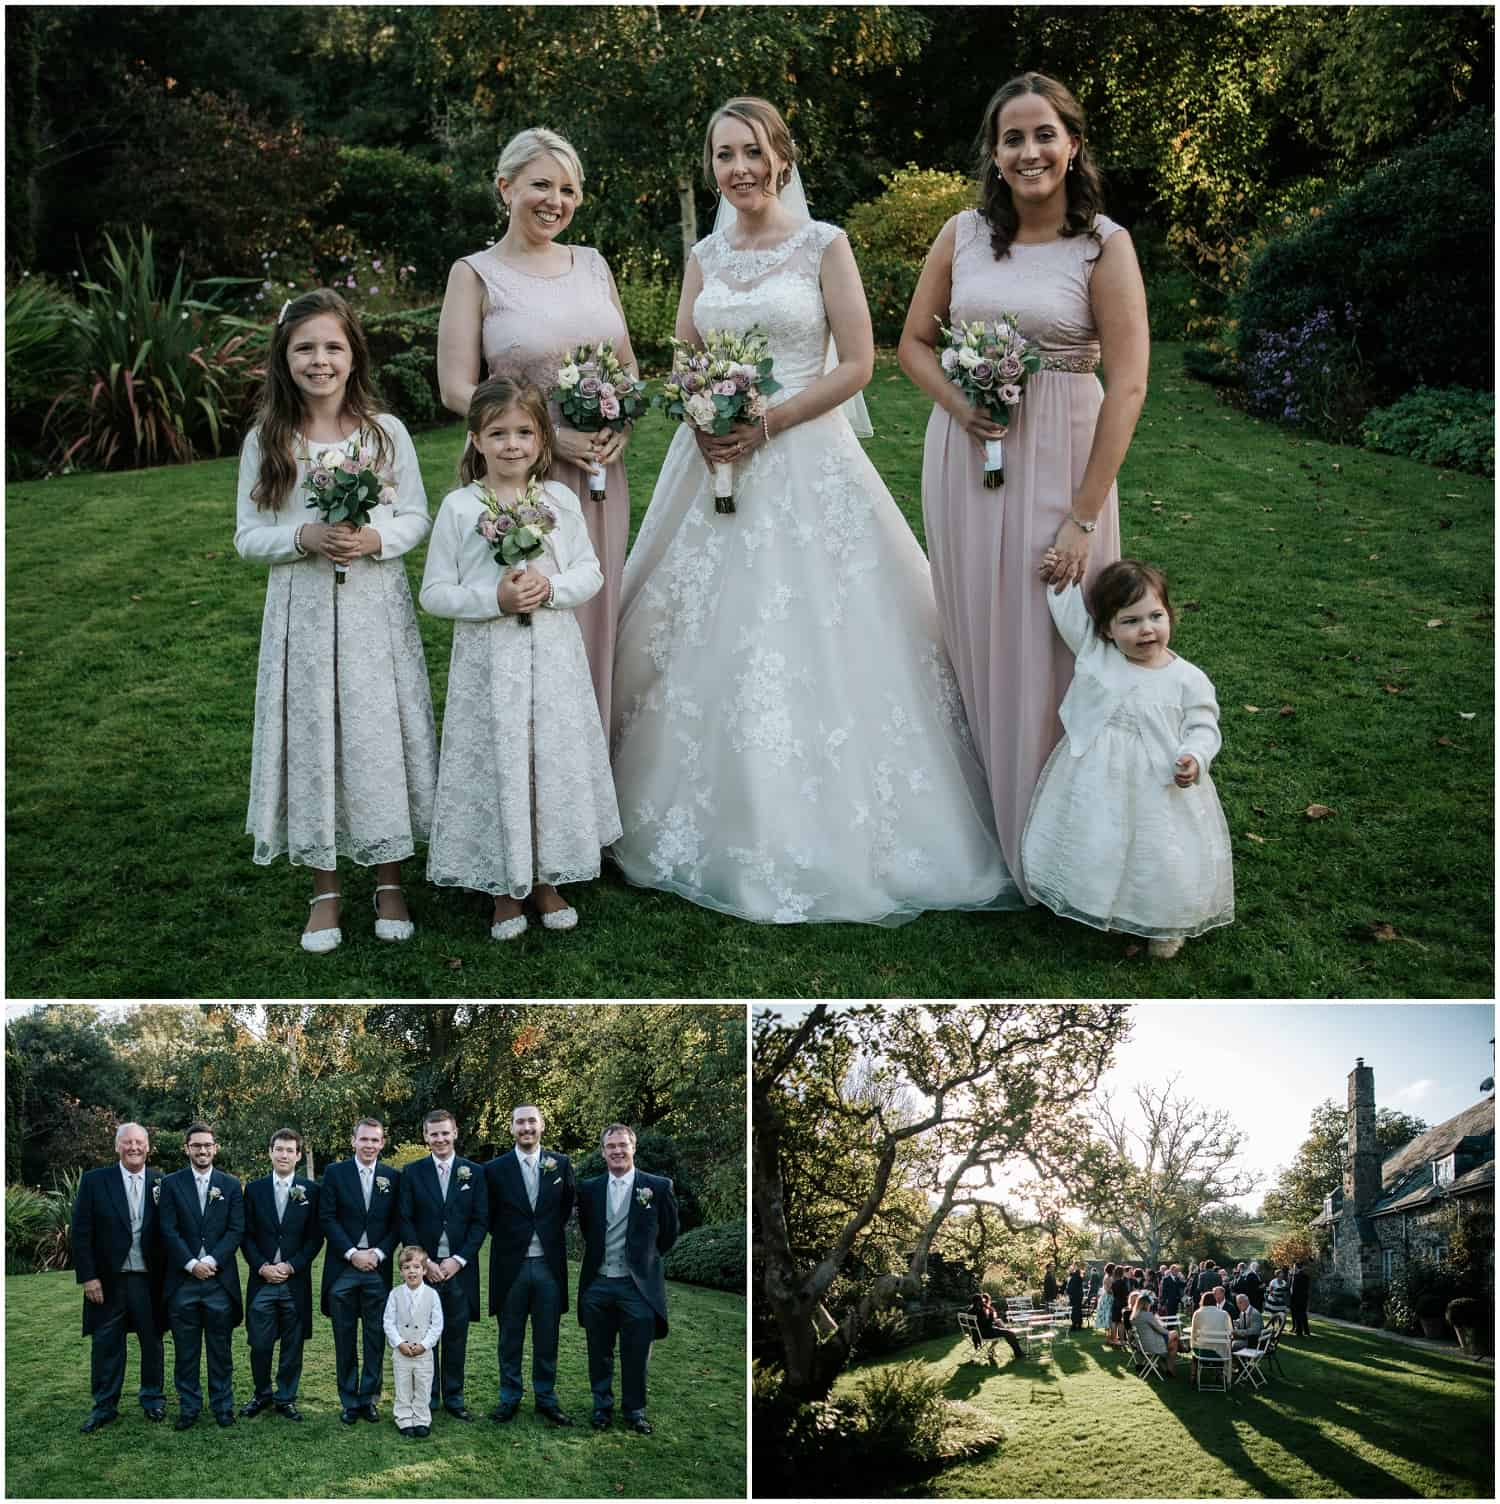 The wedding of Emma and Paul, photography by Christian Michael